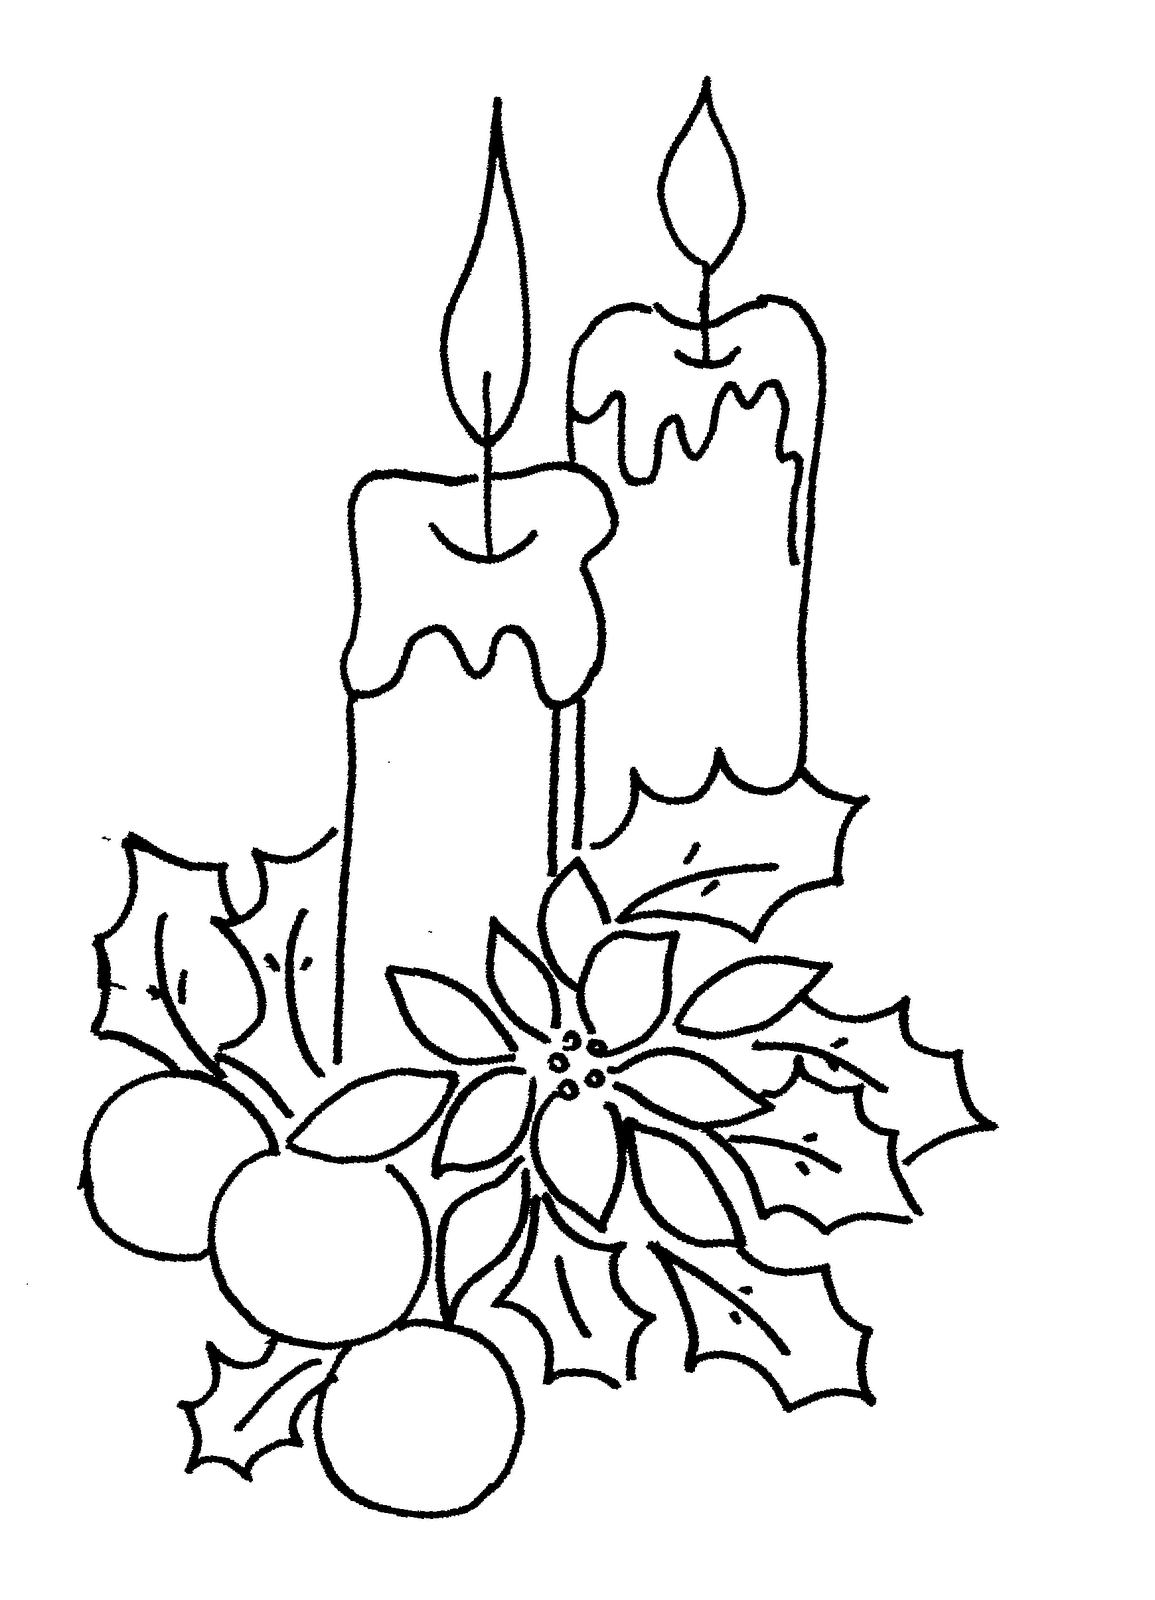 httpwwwcoloringnowcomimagesfree christmas christmas coloring sheetsfree - Xmas Coloring Pages